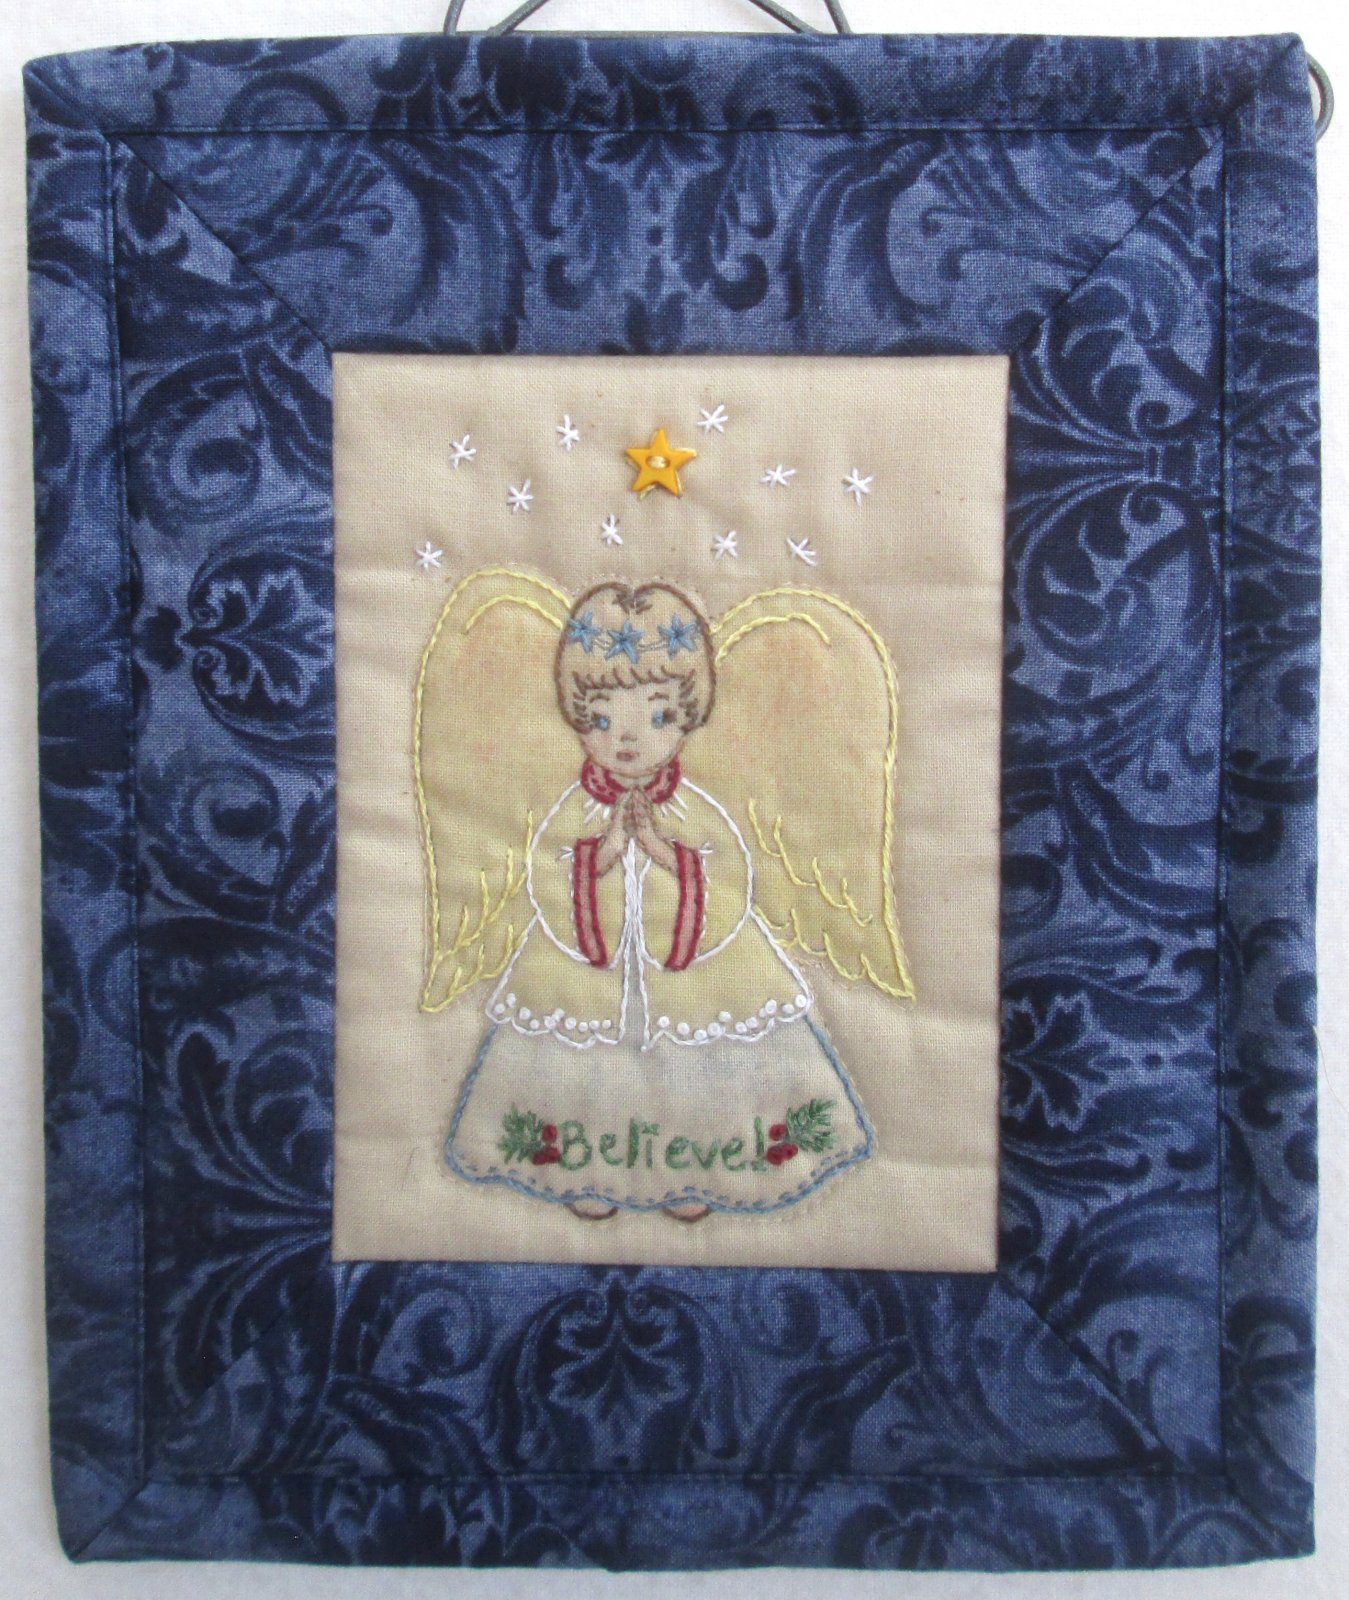 Chickadee Hollow Christmas Keepsakes Angel Mini Wall Hanging Kit Includes Buttons Backings & Binding